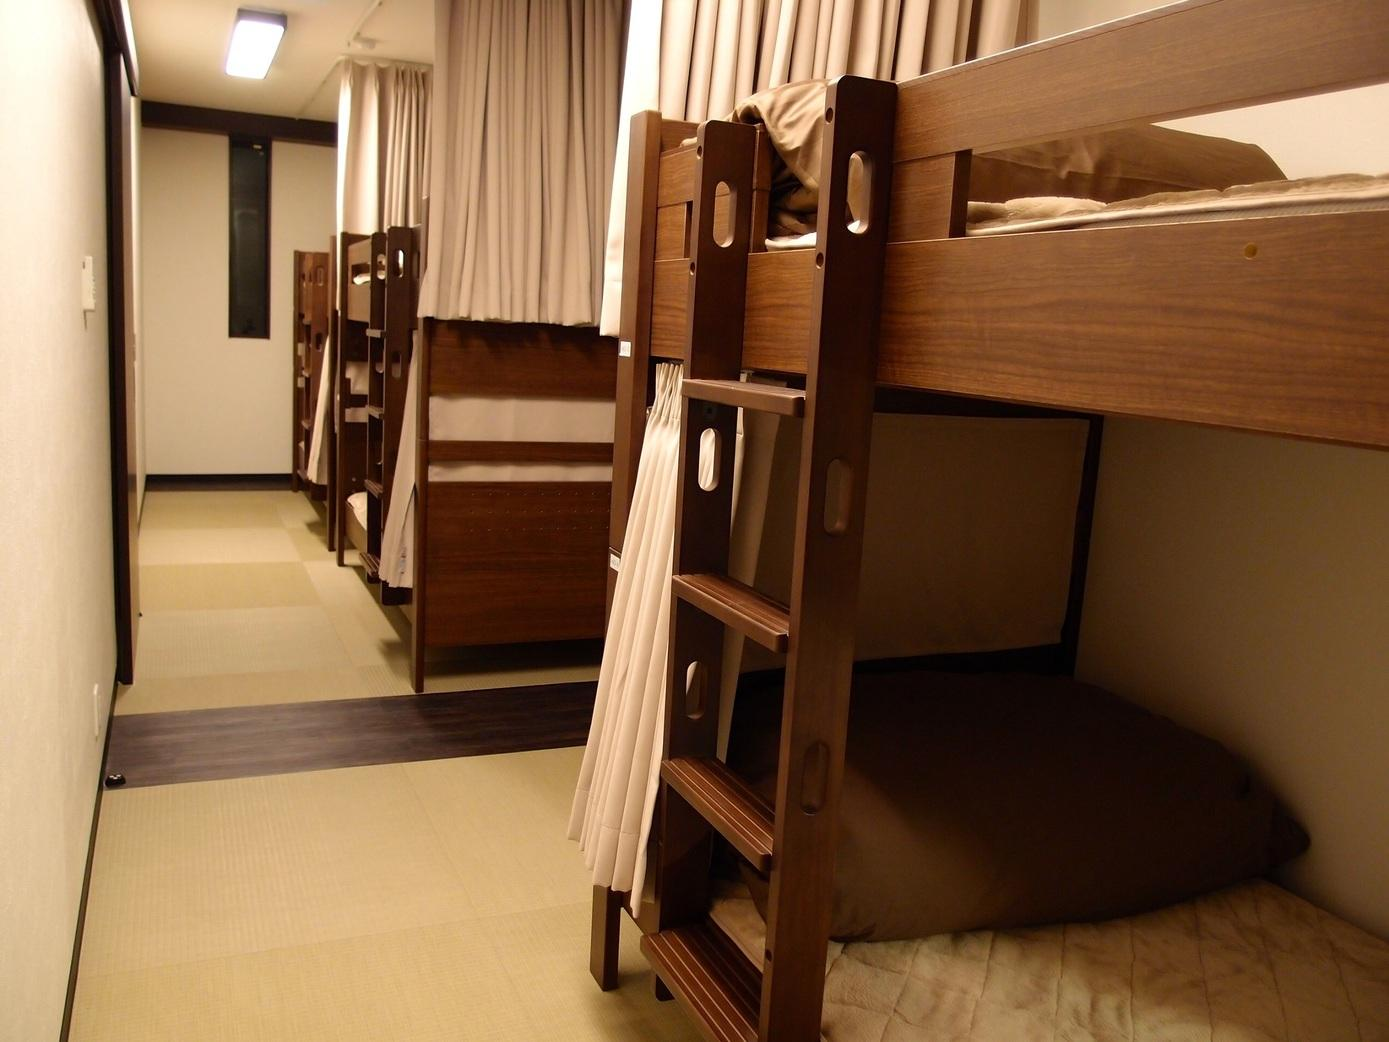 5 decent cheap hotels or guest houses in Tokyo